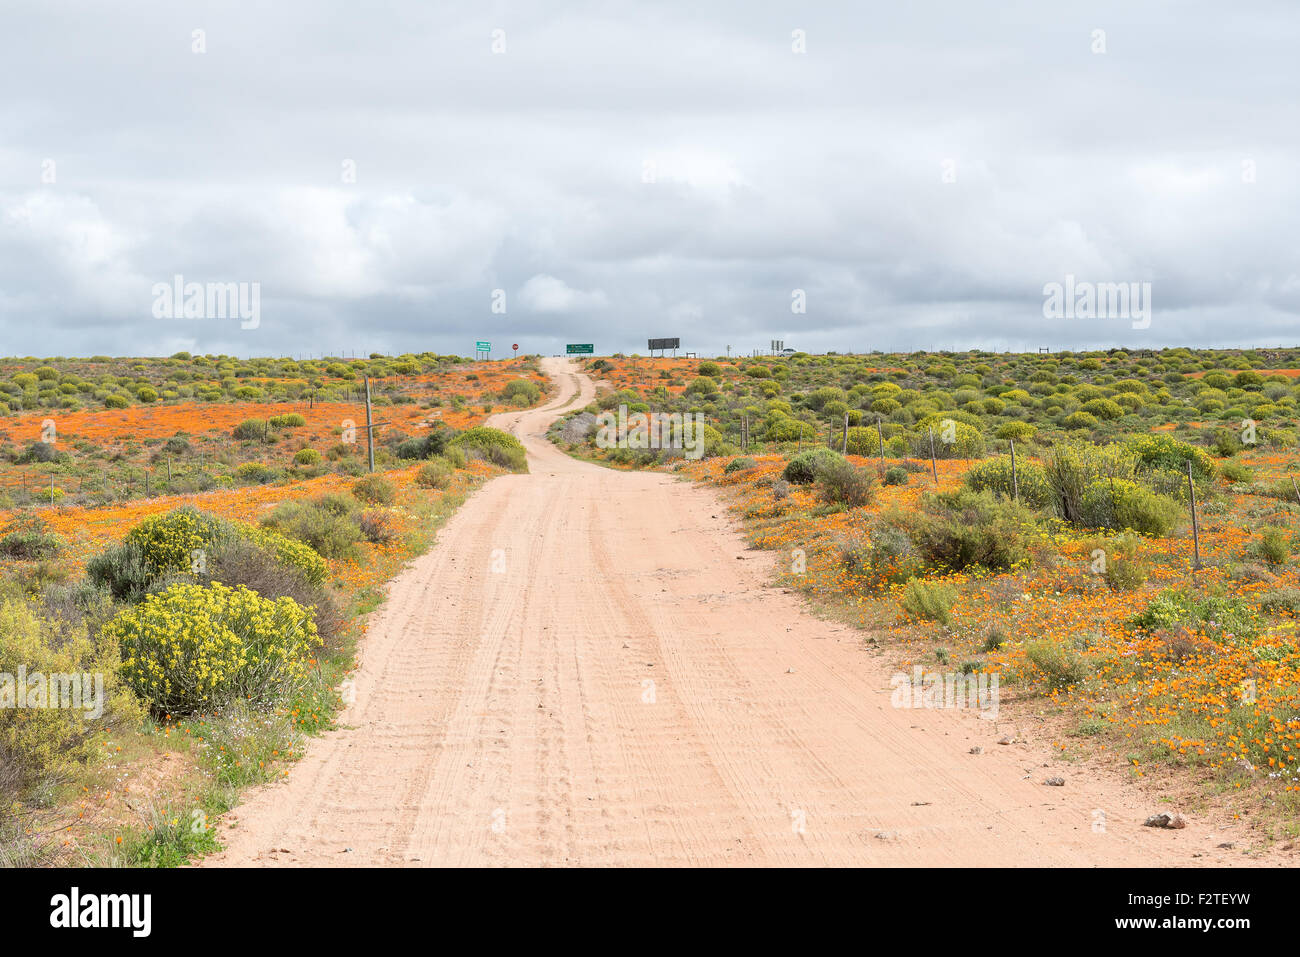 Patches of orange wild flowers as far as the eye can see. Namaqualand, South Africa Stock Photo